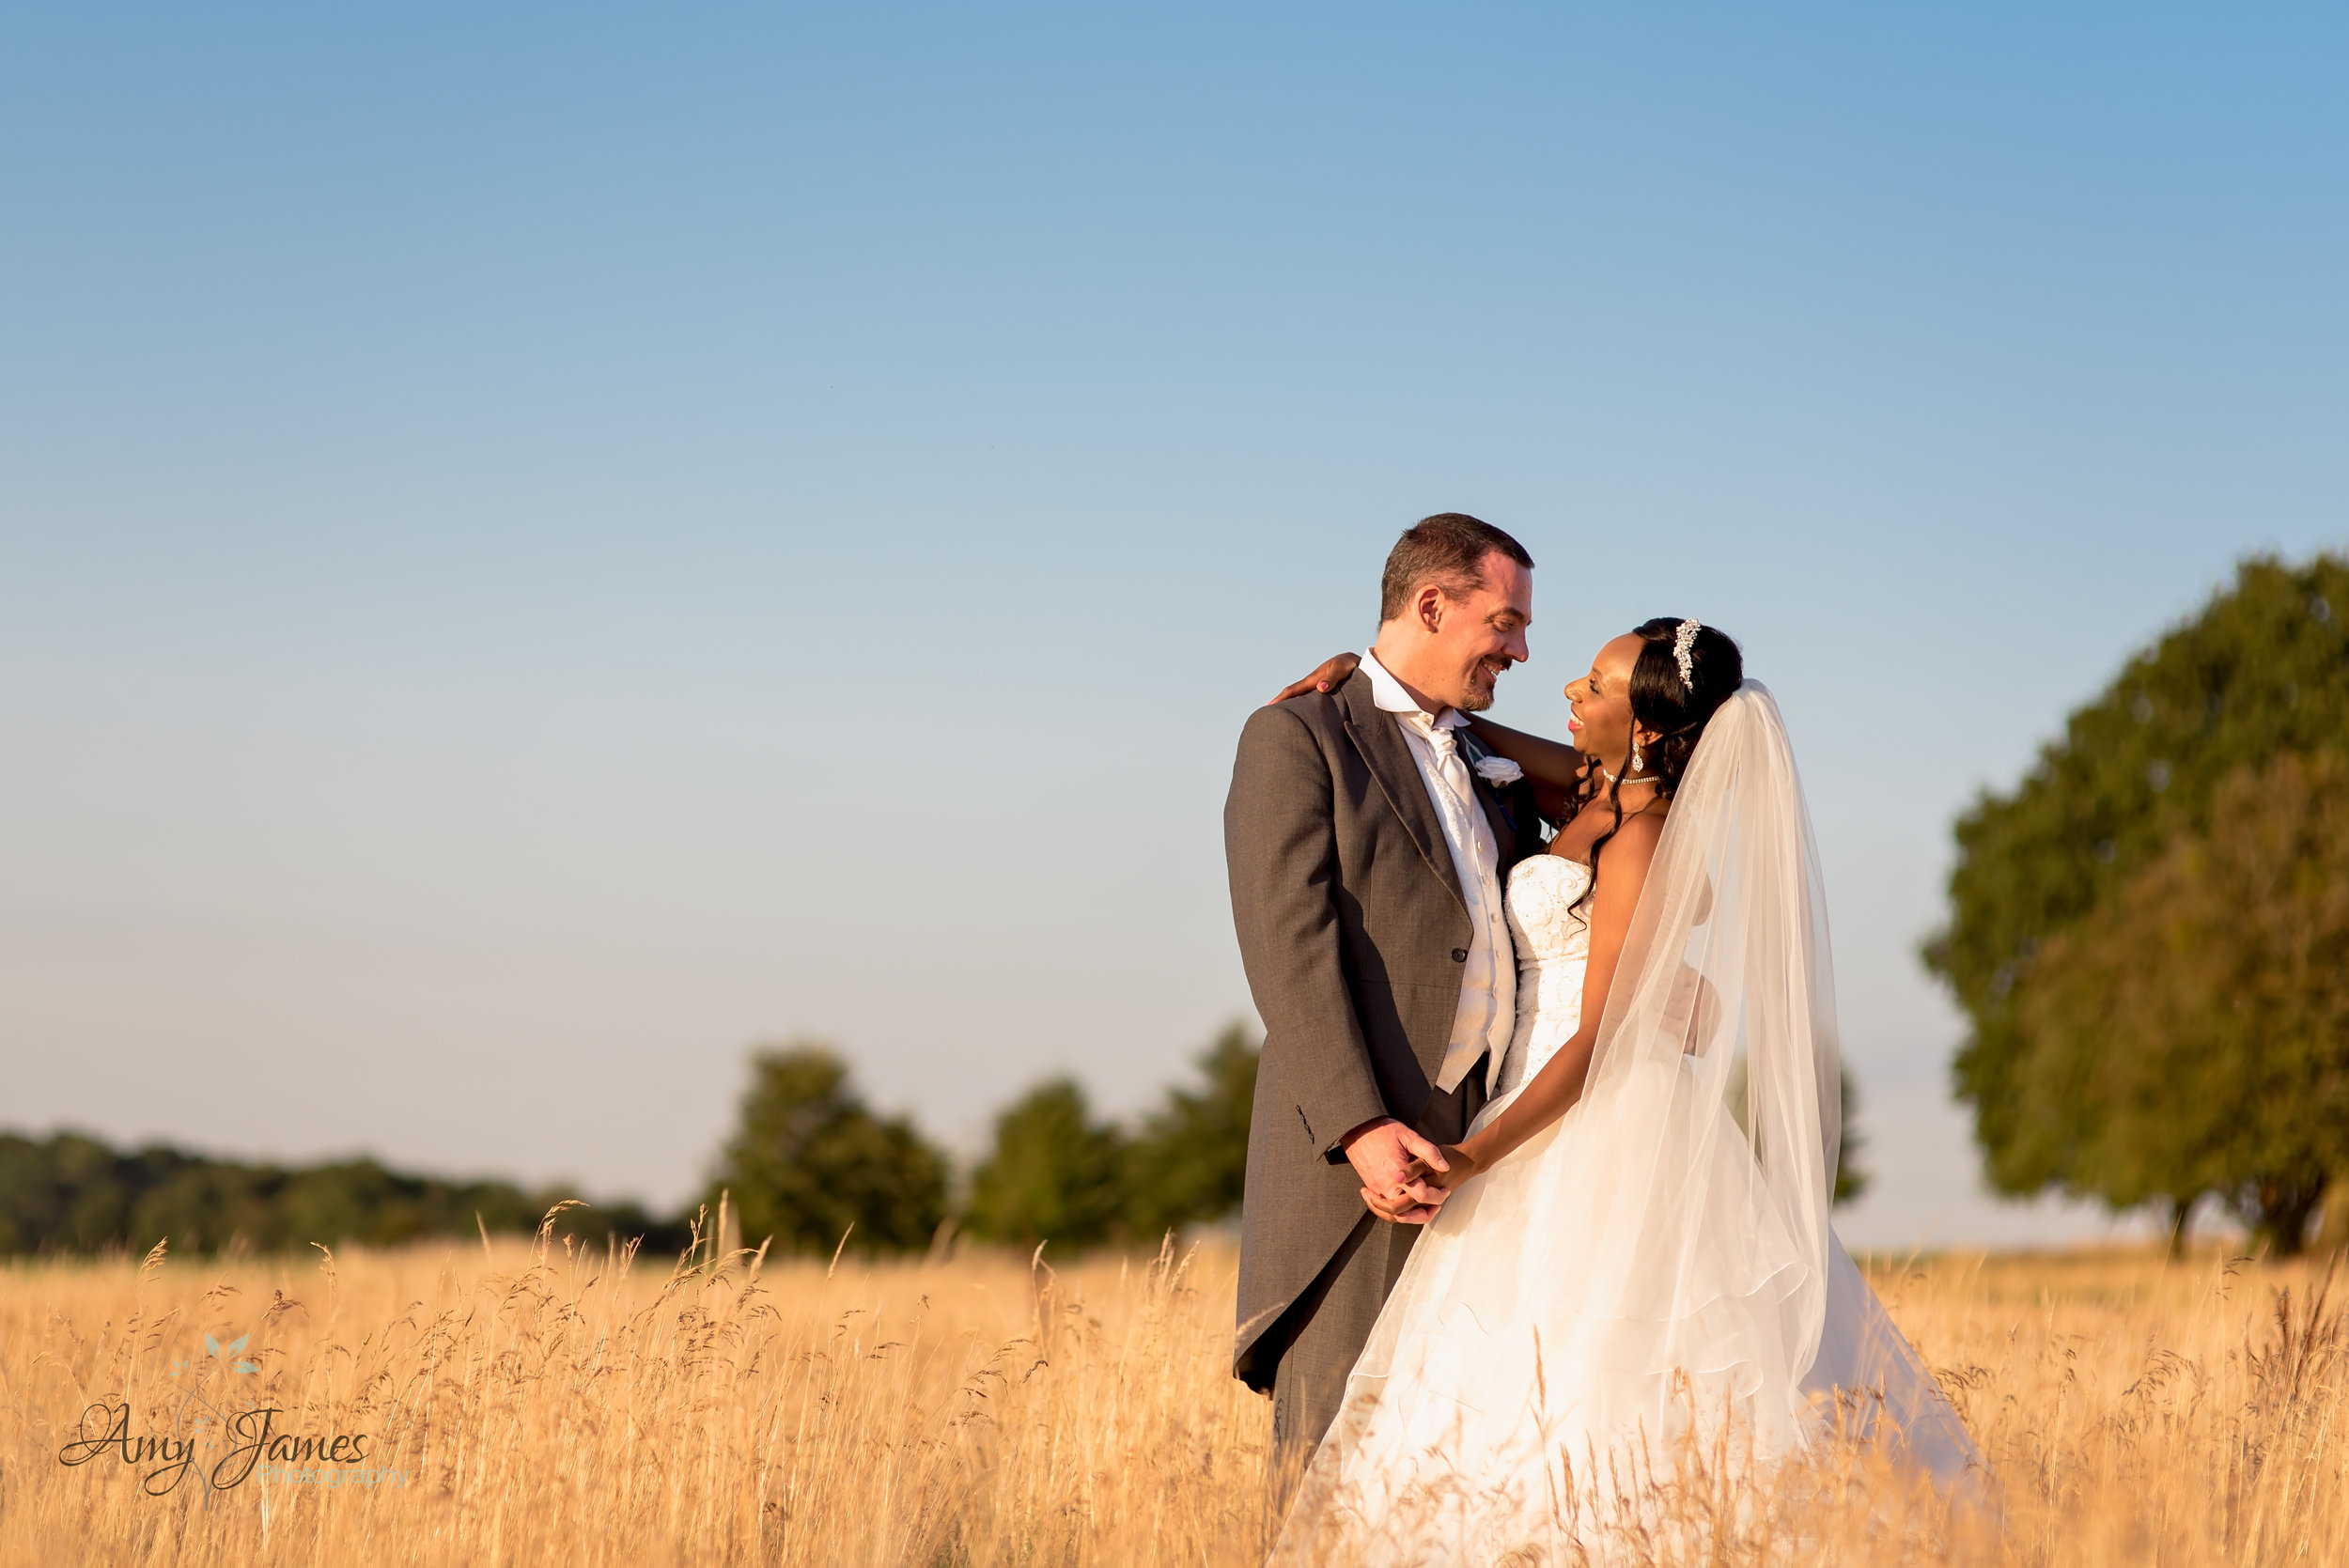 Sunset photo of Bride and Groom at Four Seasons Hotel Hampshire Wedding Venue - Amy James Photography - Hampshire wedding photographer